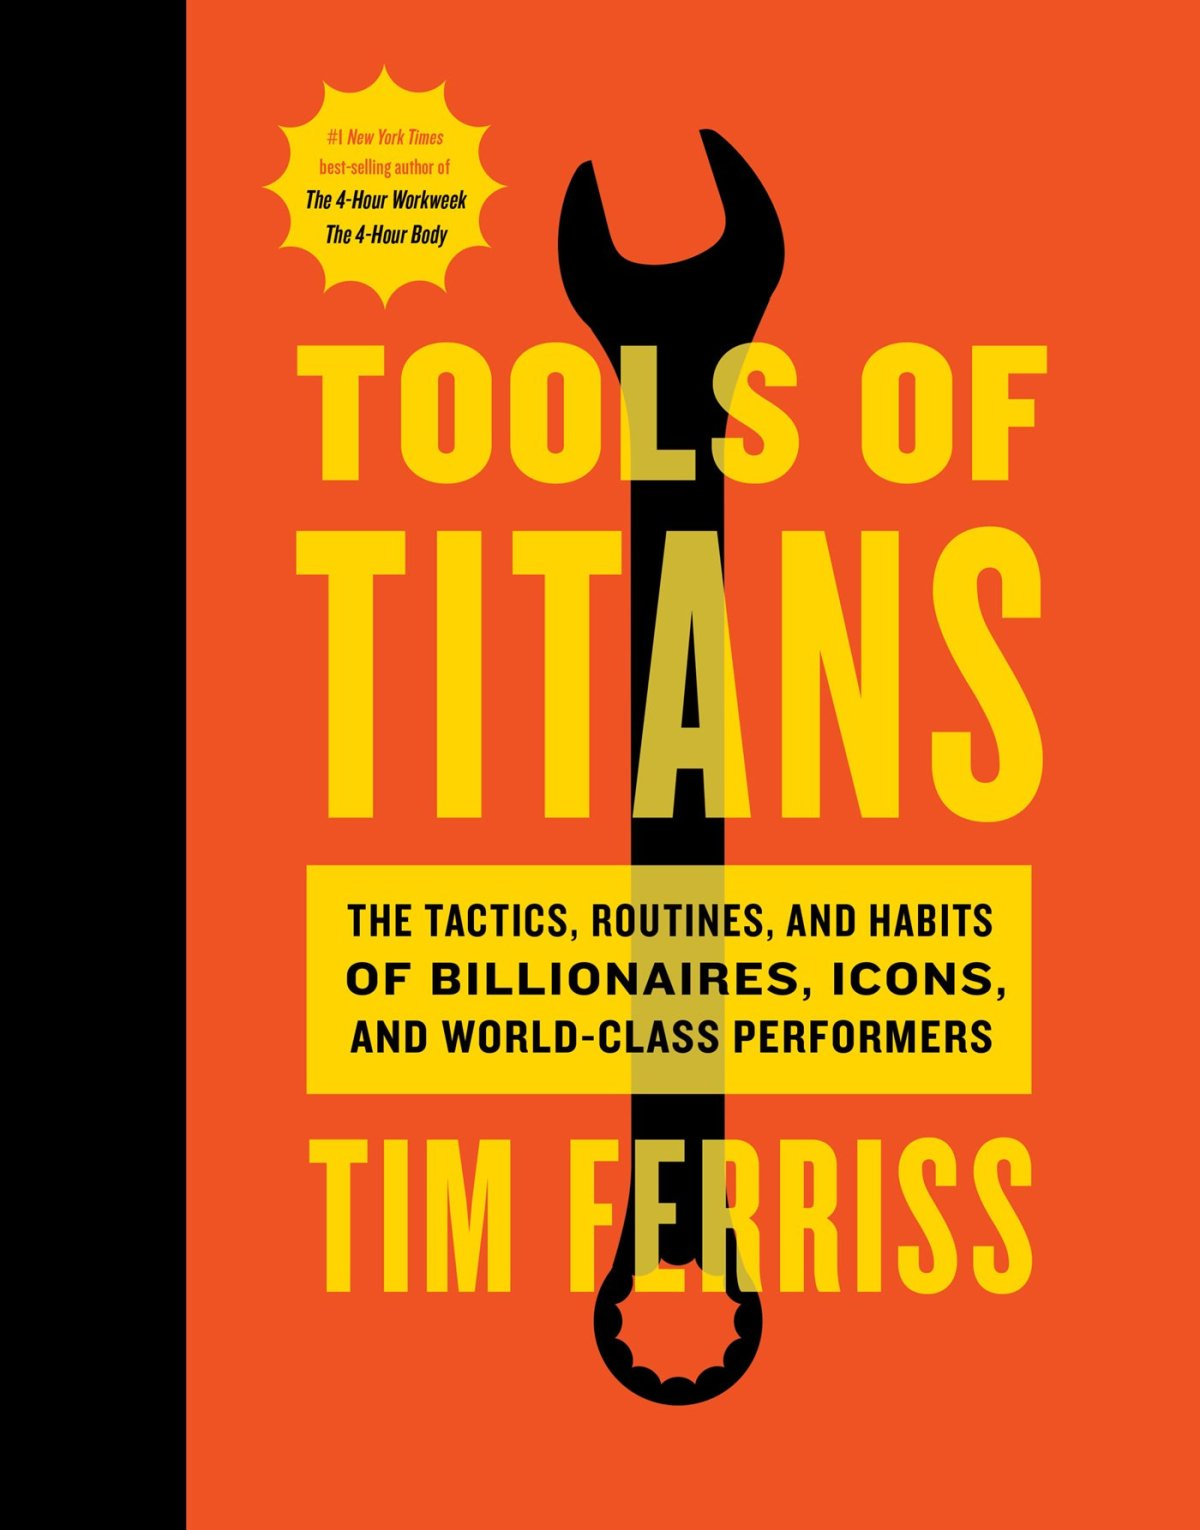 Tools of Titans: The Tactics, Routines, and Habits of Billionaires, Icons,  and World-Class Performers | Amazon.com.br